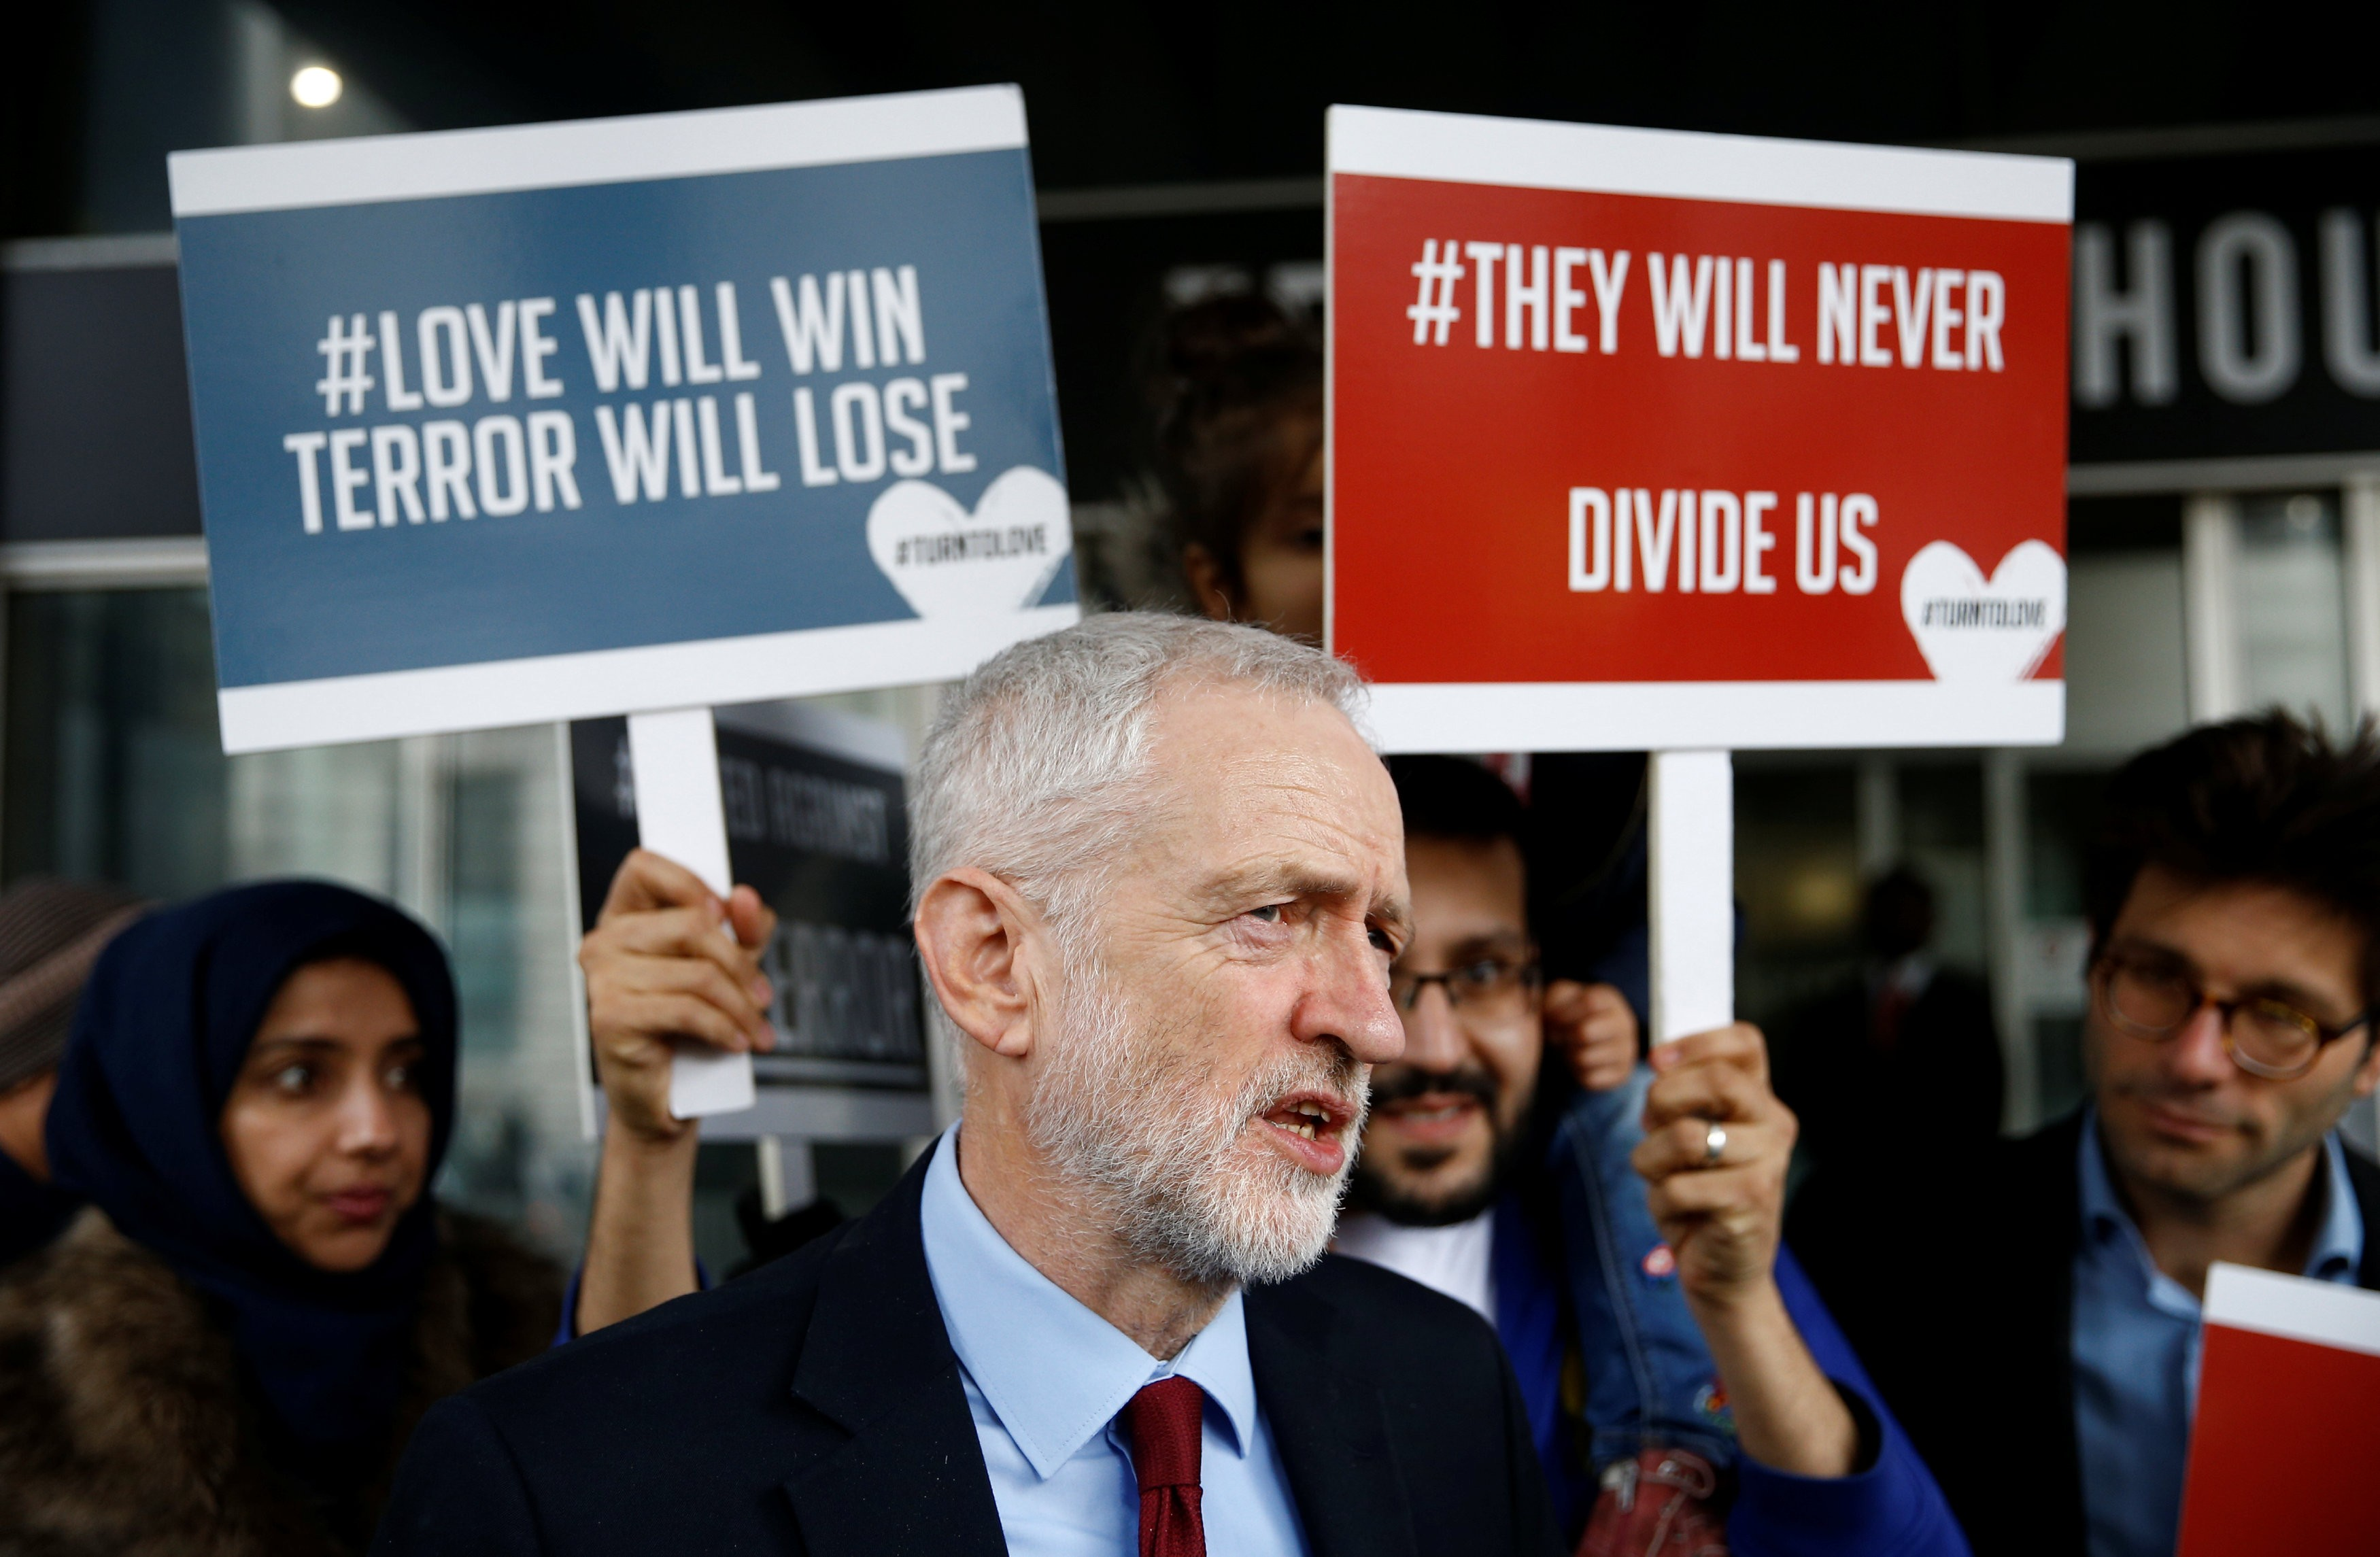 Labour Party leader Jeremy Corbyn speaks to the media outside New Zealand House, following the Christchurch mosque attacks in New Zealand, in London, on March 15